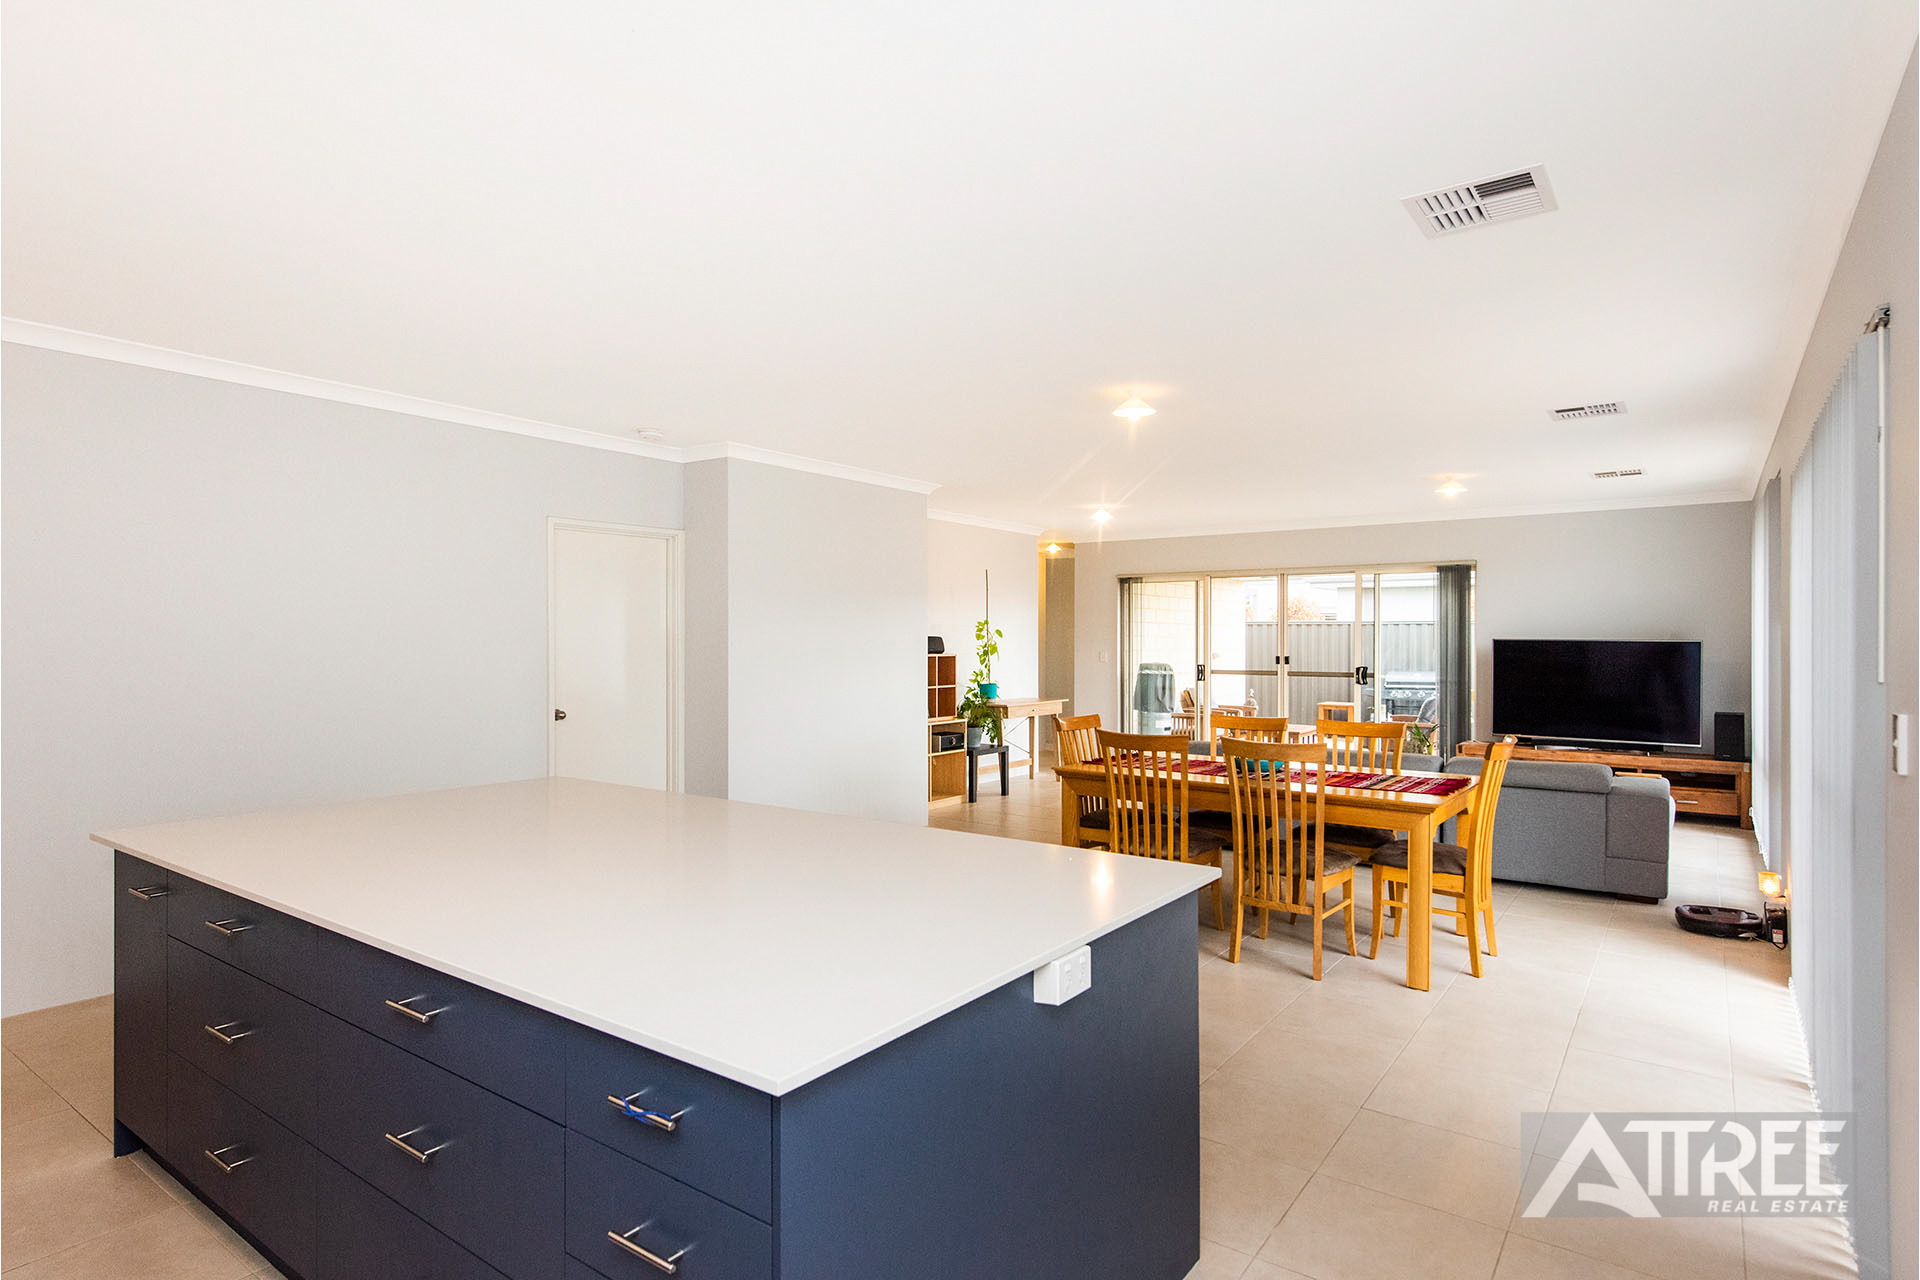 Property for sale in TREEBY, 2 Bronzite Road : Attree Real Estate